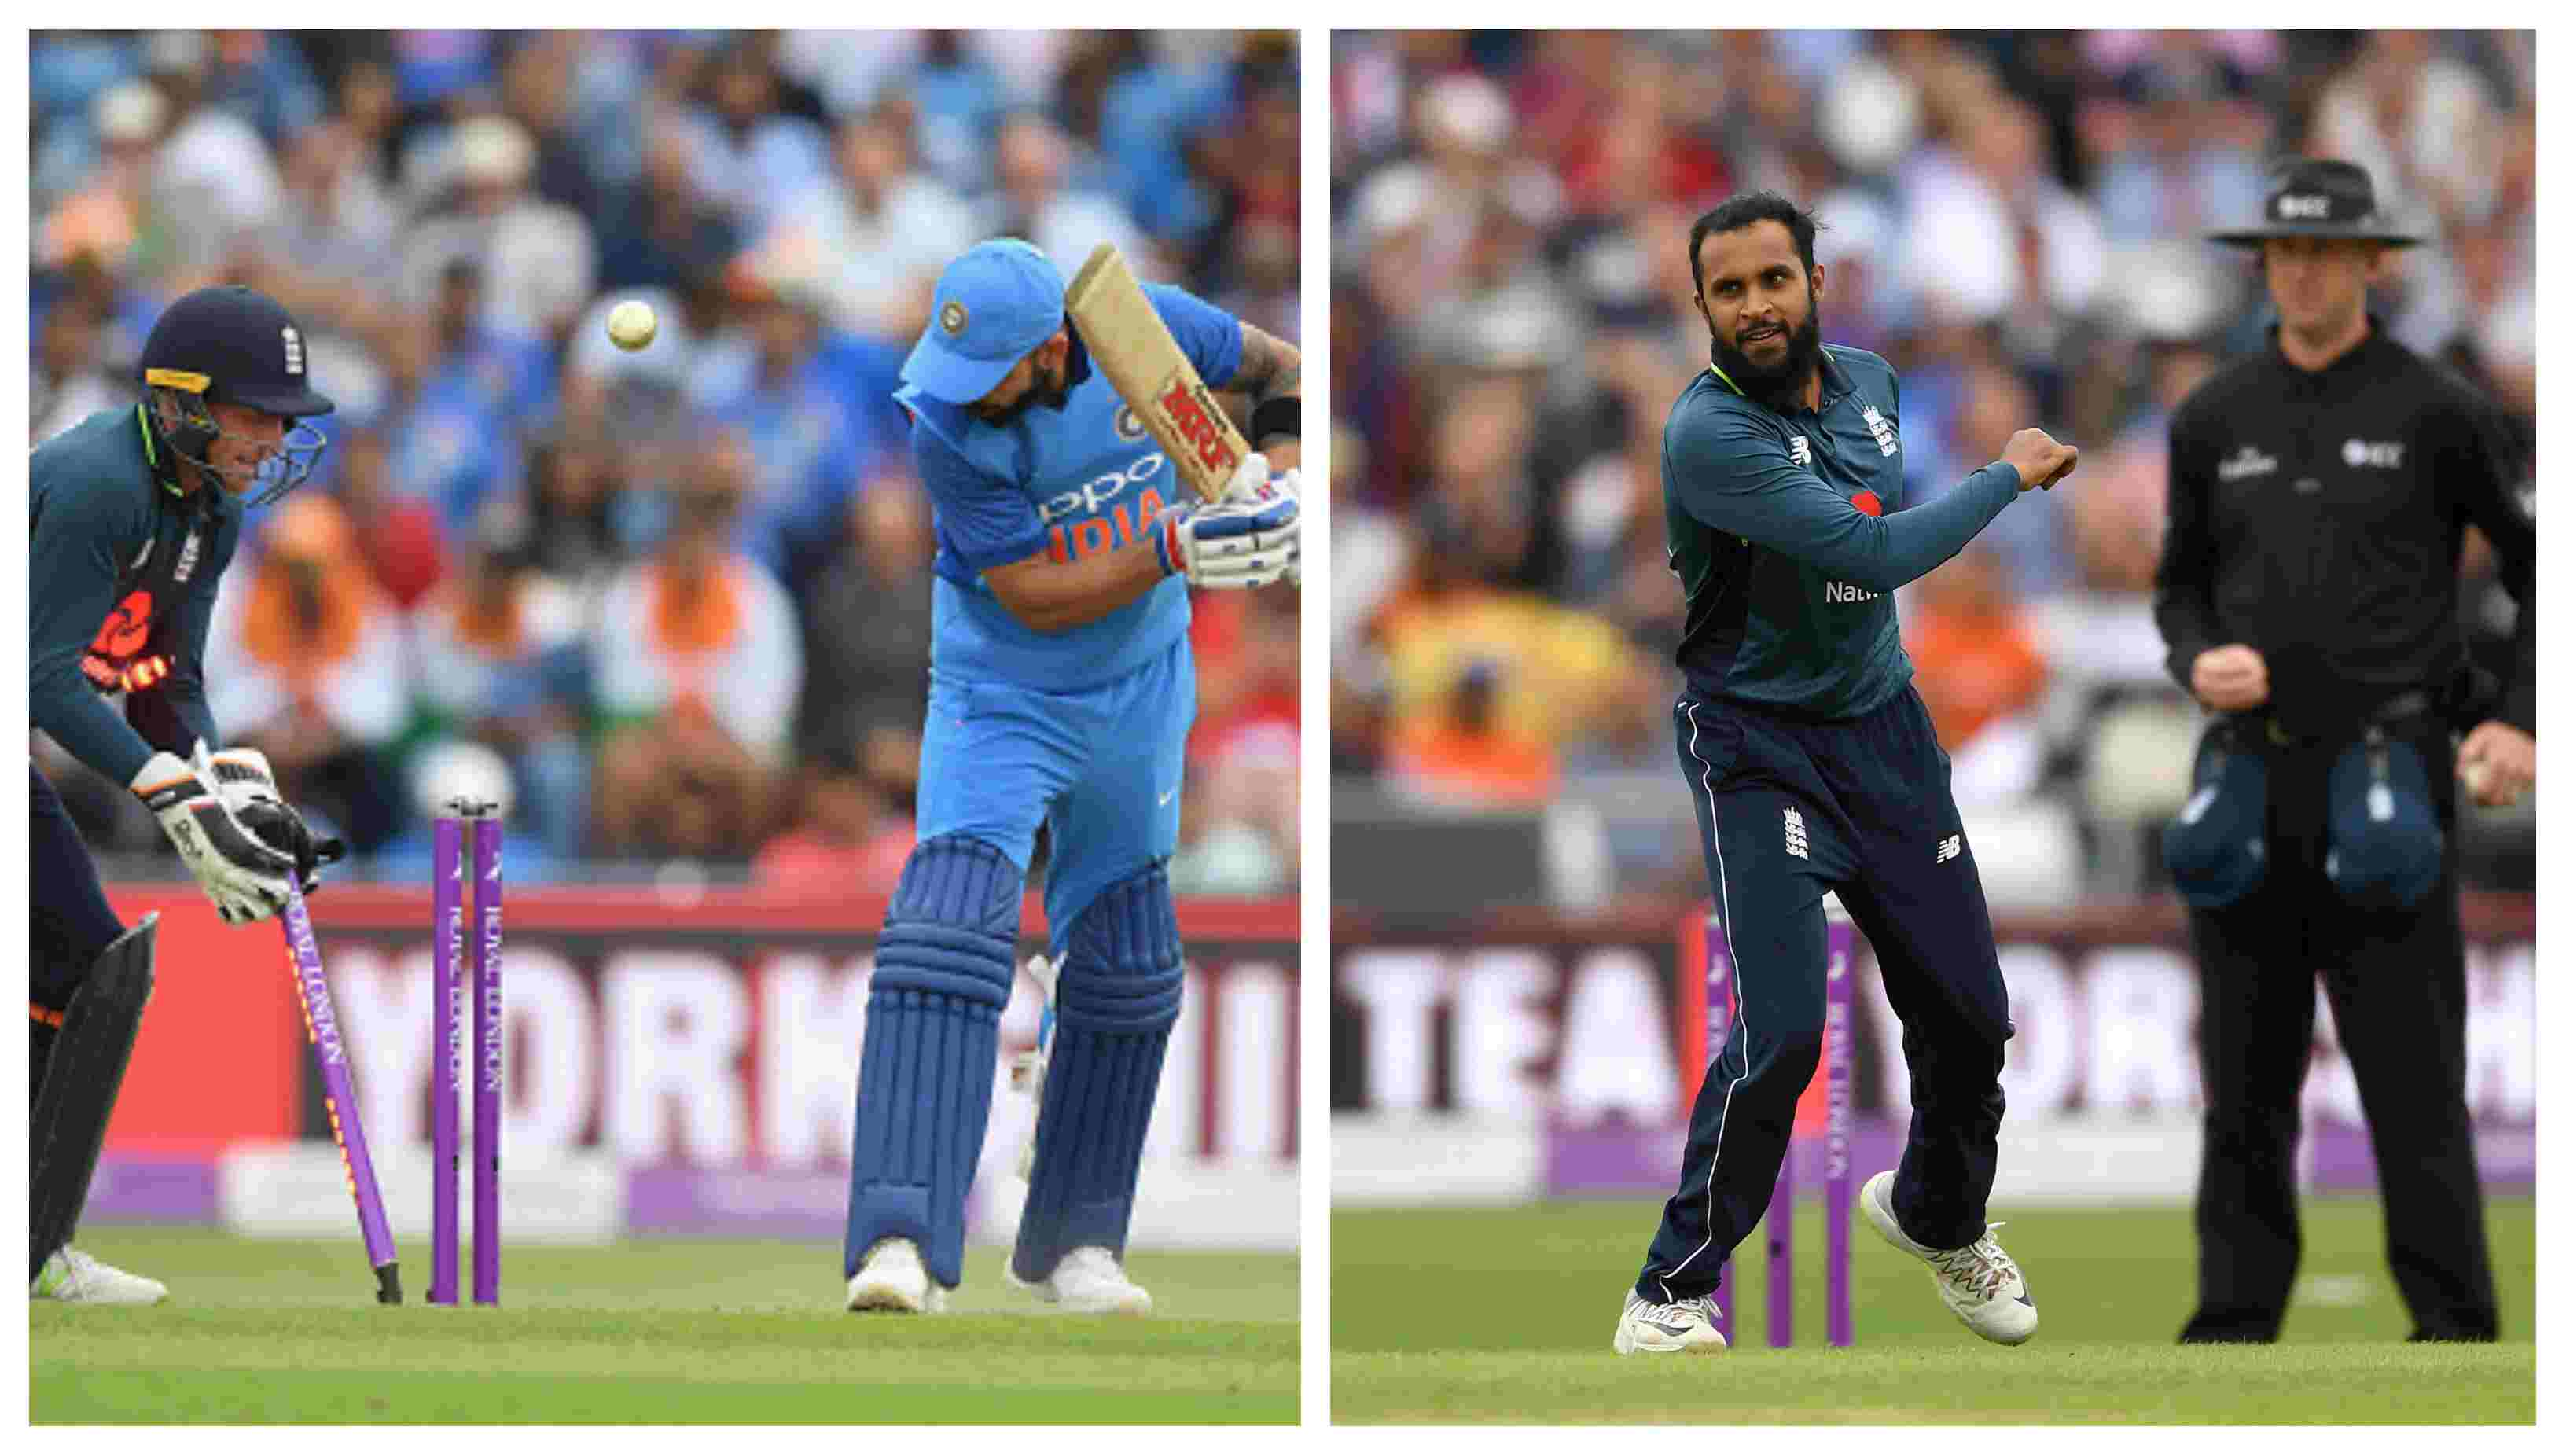 Adil Rashid turned out to be the nemesis for India batsmen in recently concluded ODI series